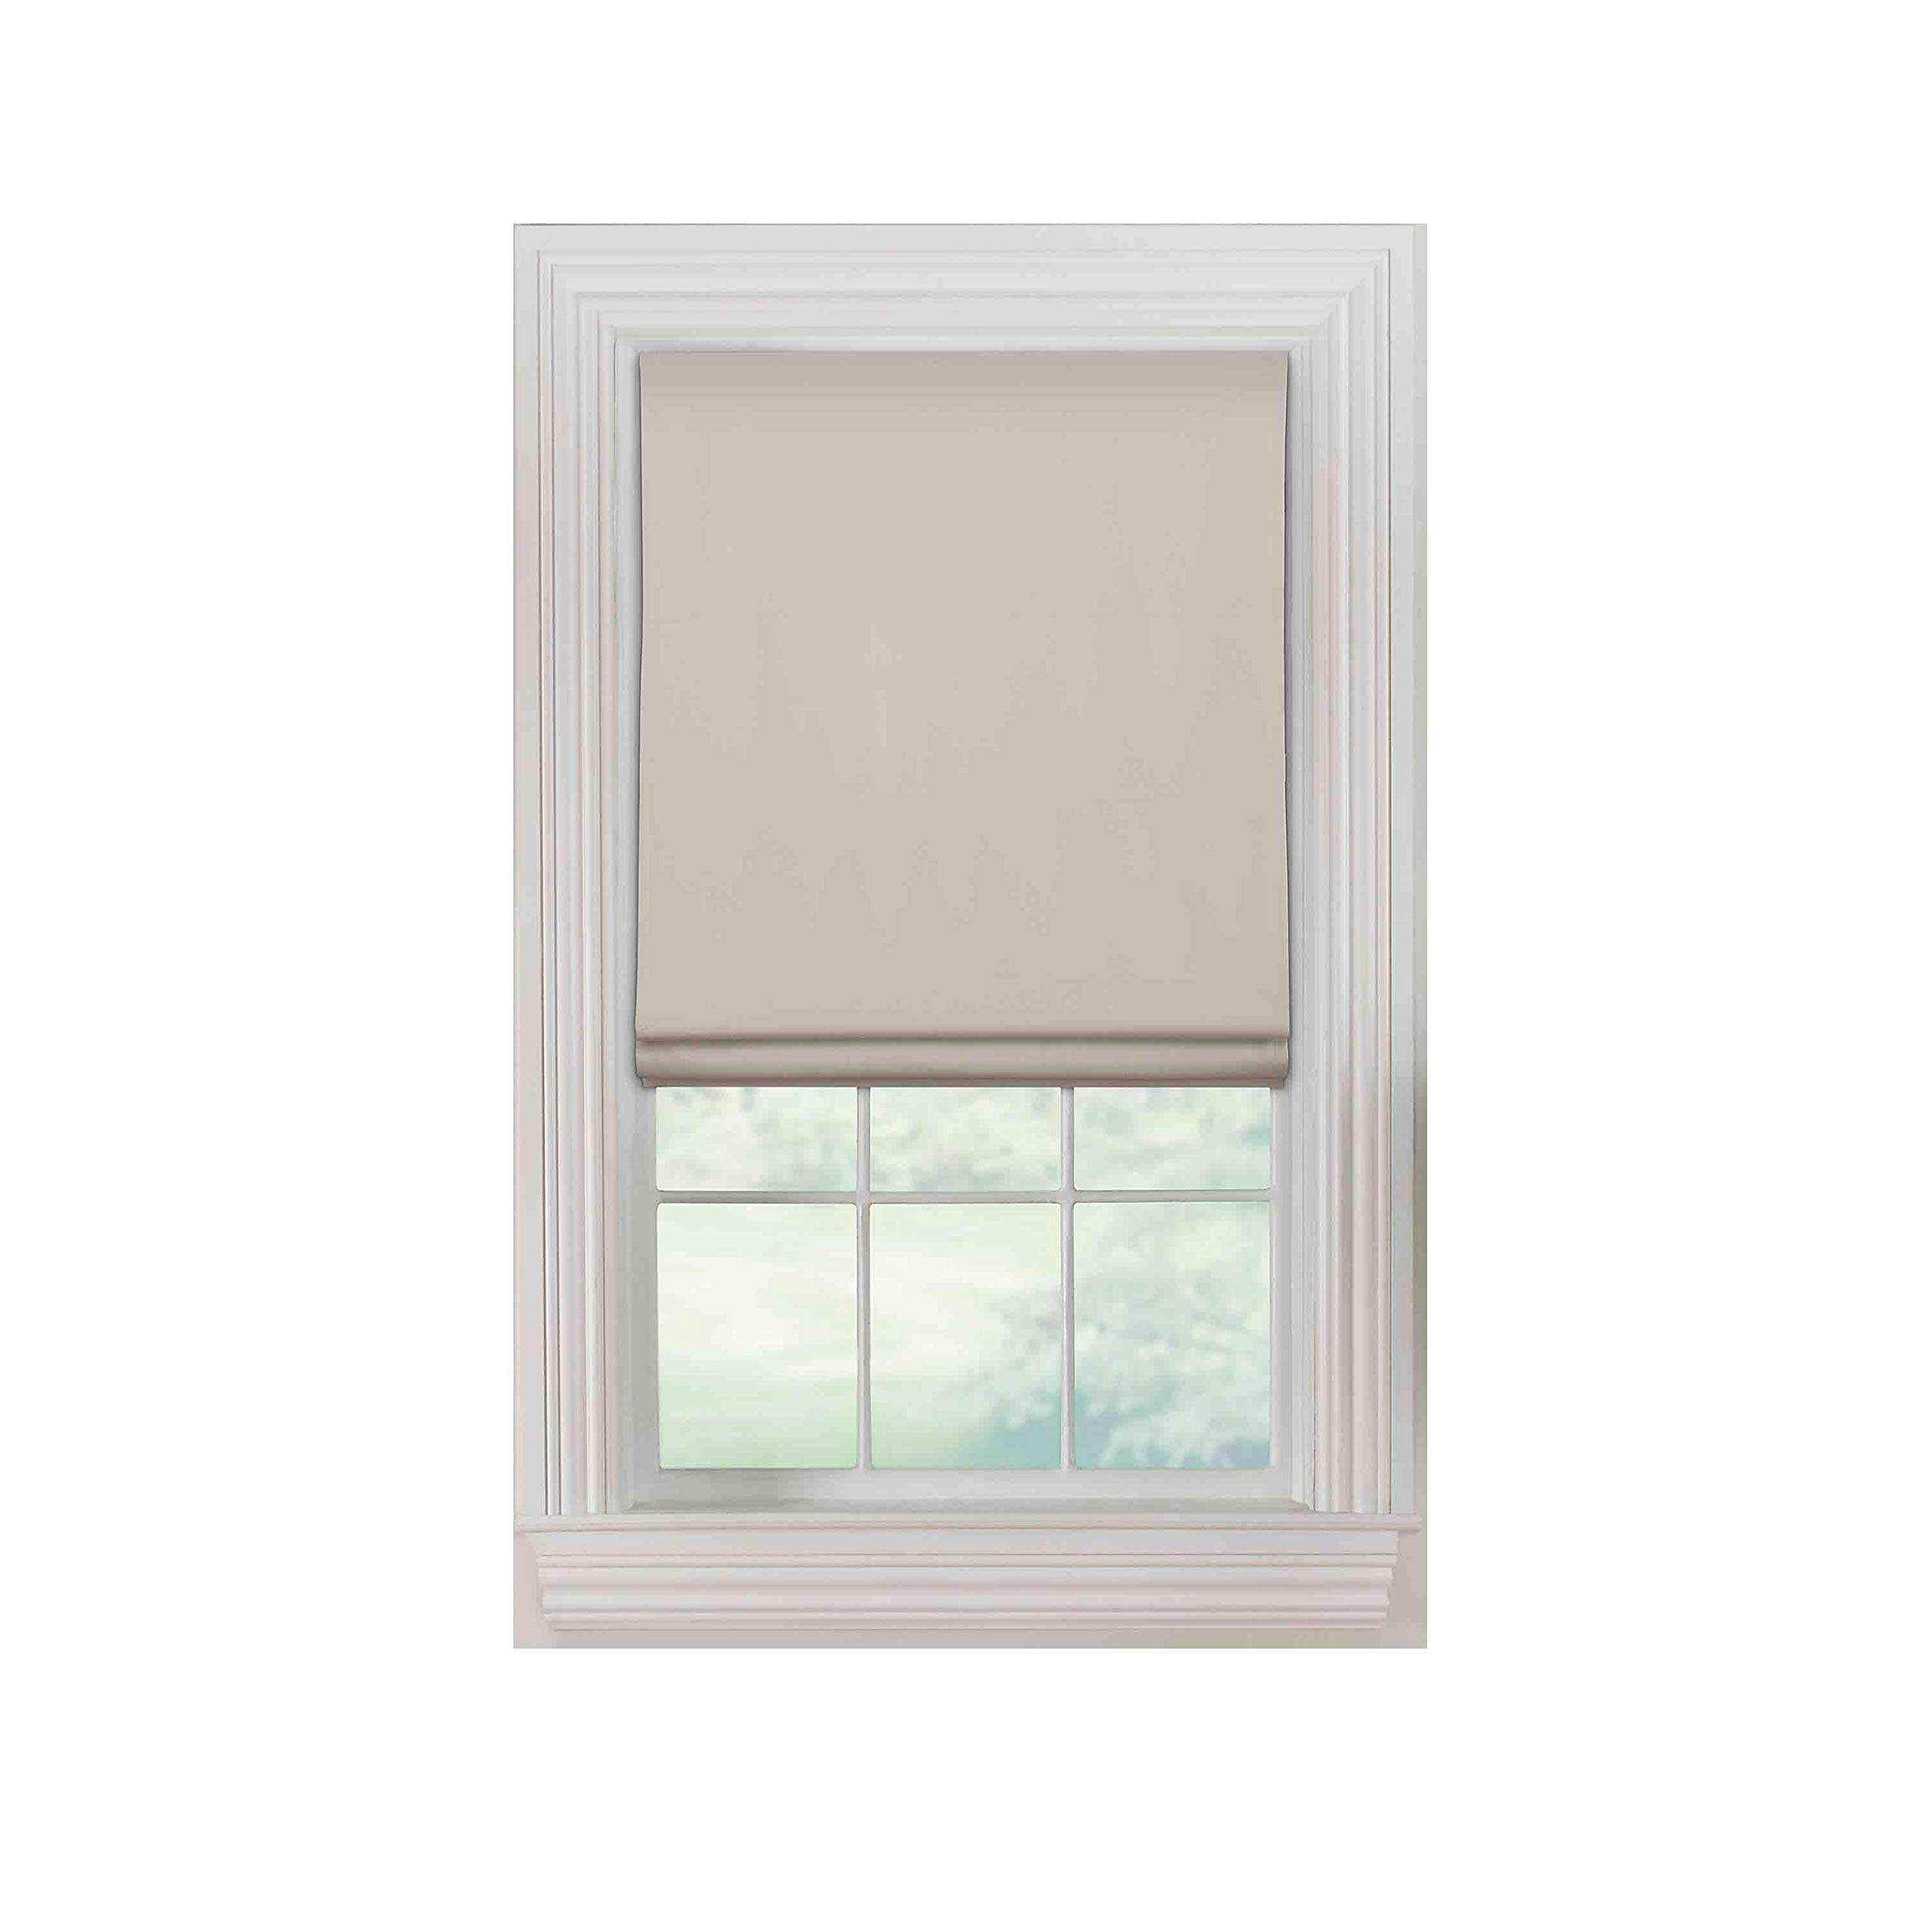 Furniture Fresh Flat Roman Shades-Blackout, Thermal-(32''W x 72''L, Ivory-OffWhite)-Linen & Polyester-Cordless by Furniture Fresh